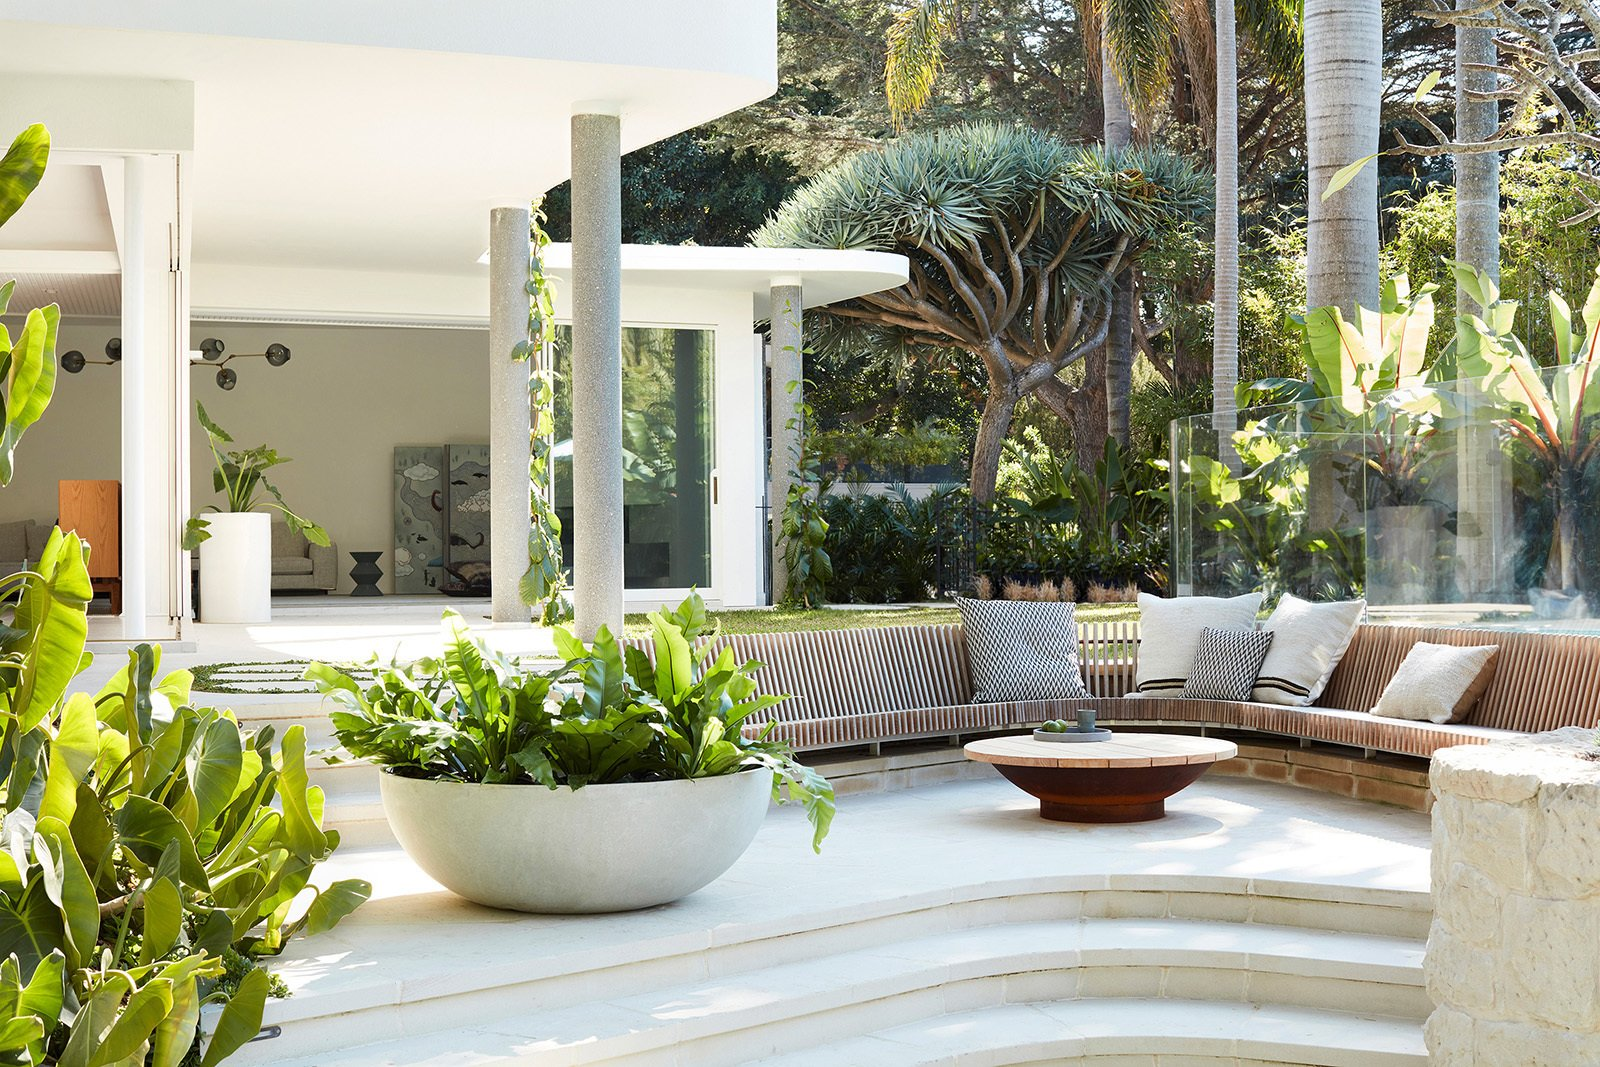 5 Homes With Picturesque Patios